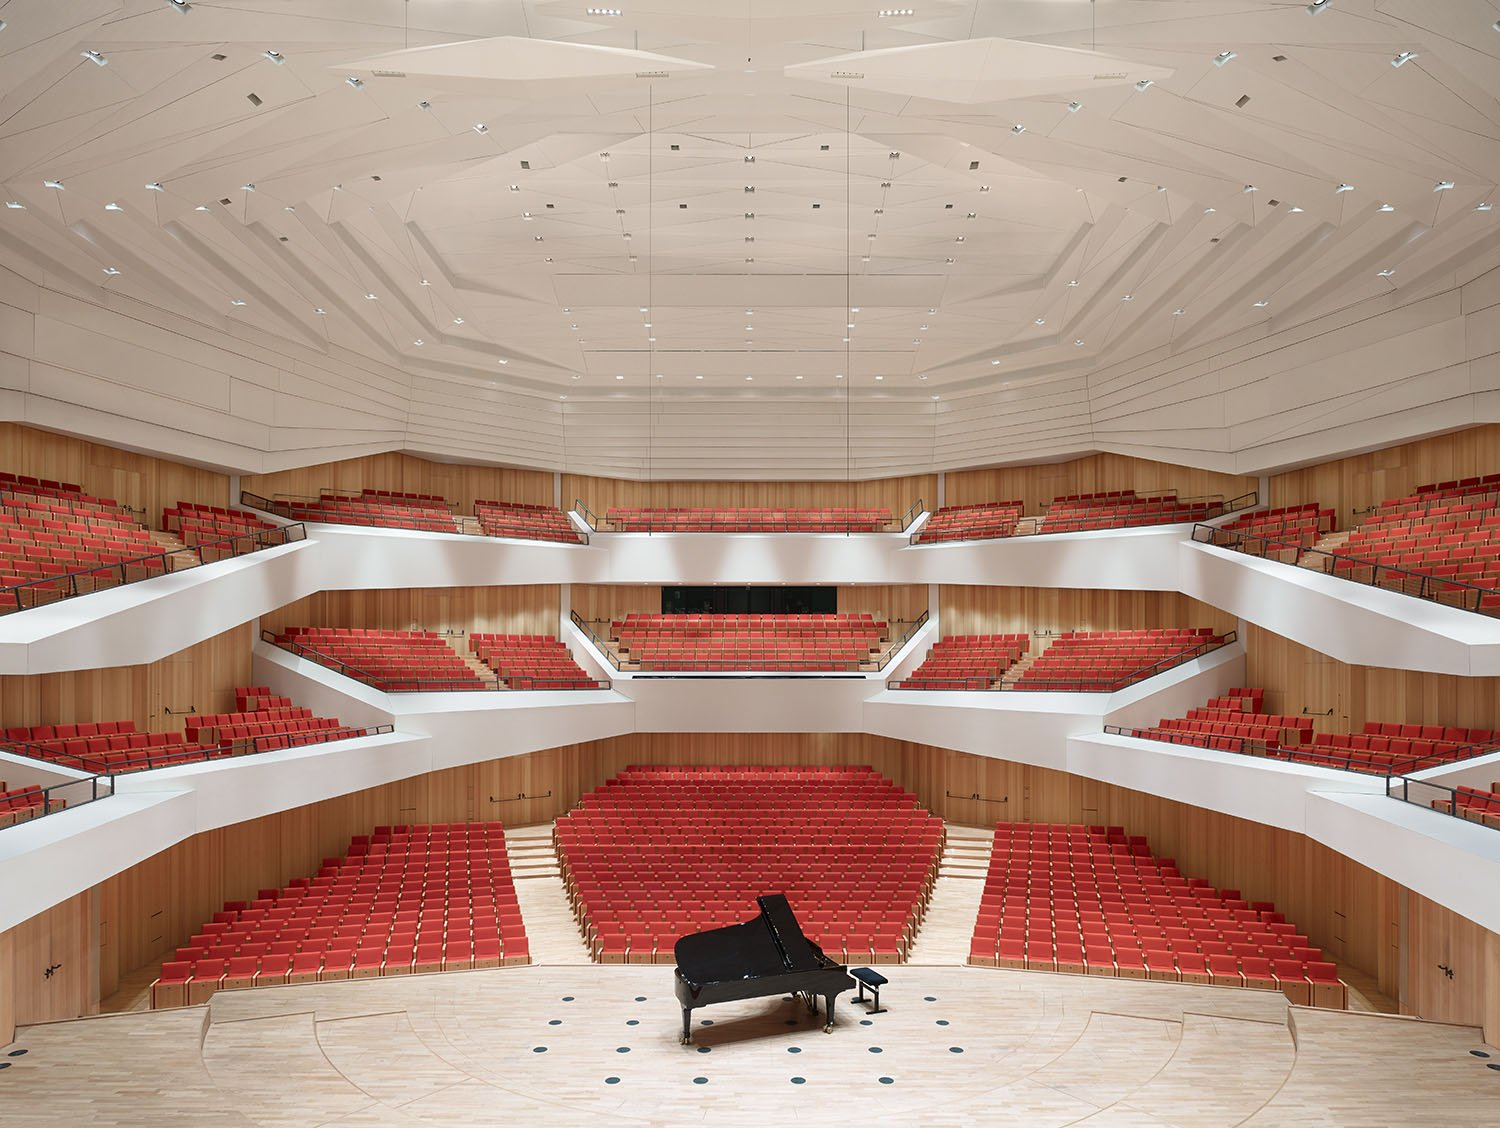 Concert hall, view from stage Christian Gahl